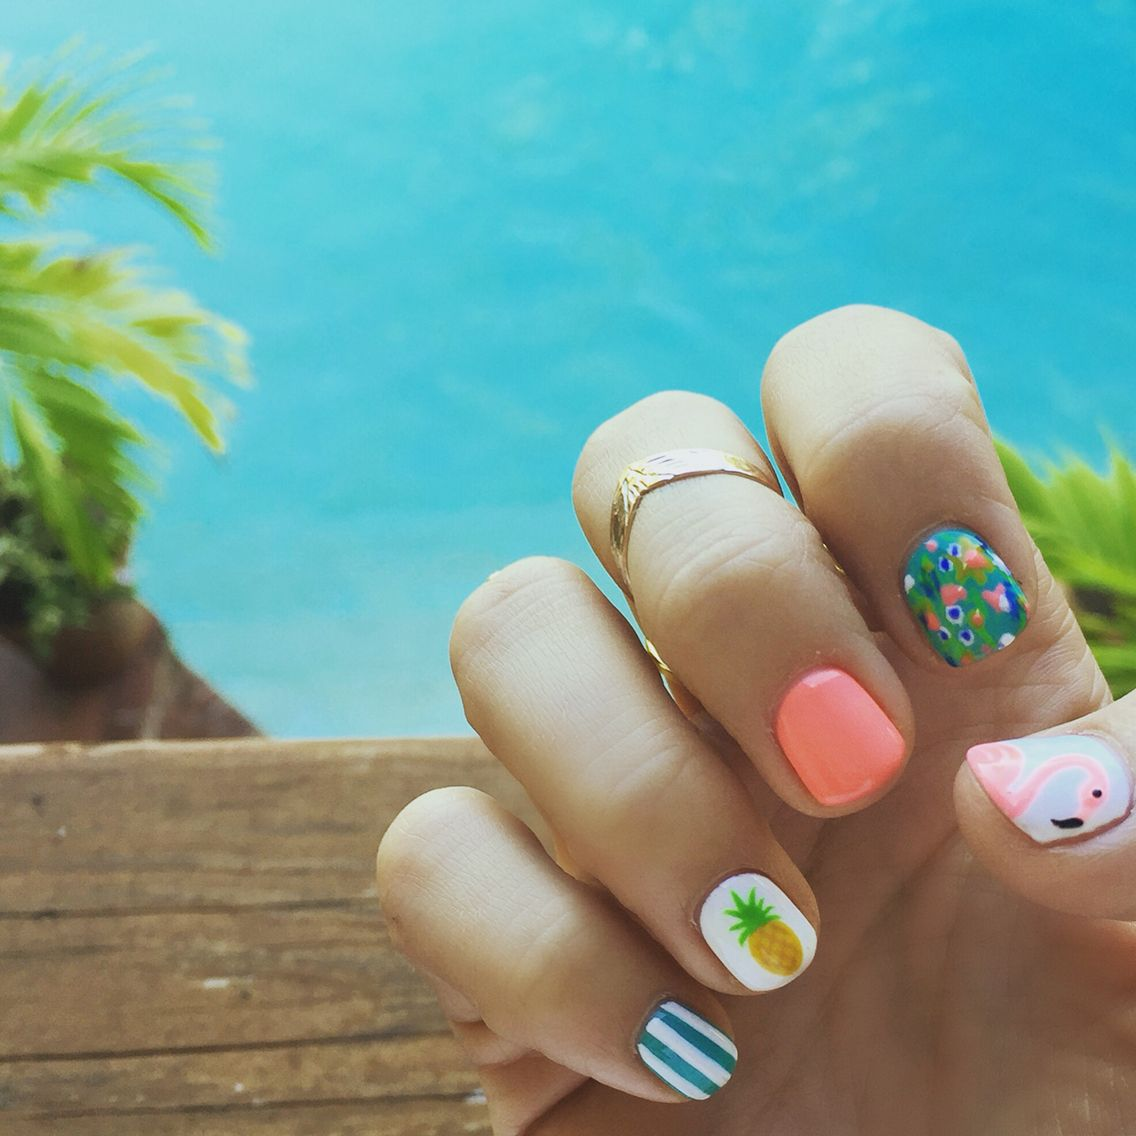 Summer nails #nailart #pineapple #flamingo - Pineapple Nails Pinterest Pineapple Nails, Makeup And Manicure